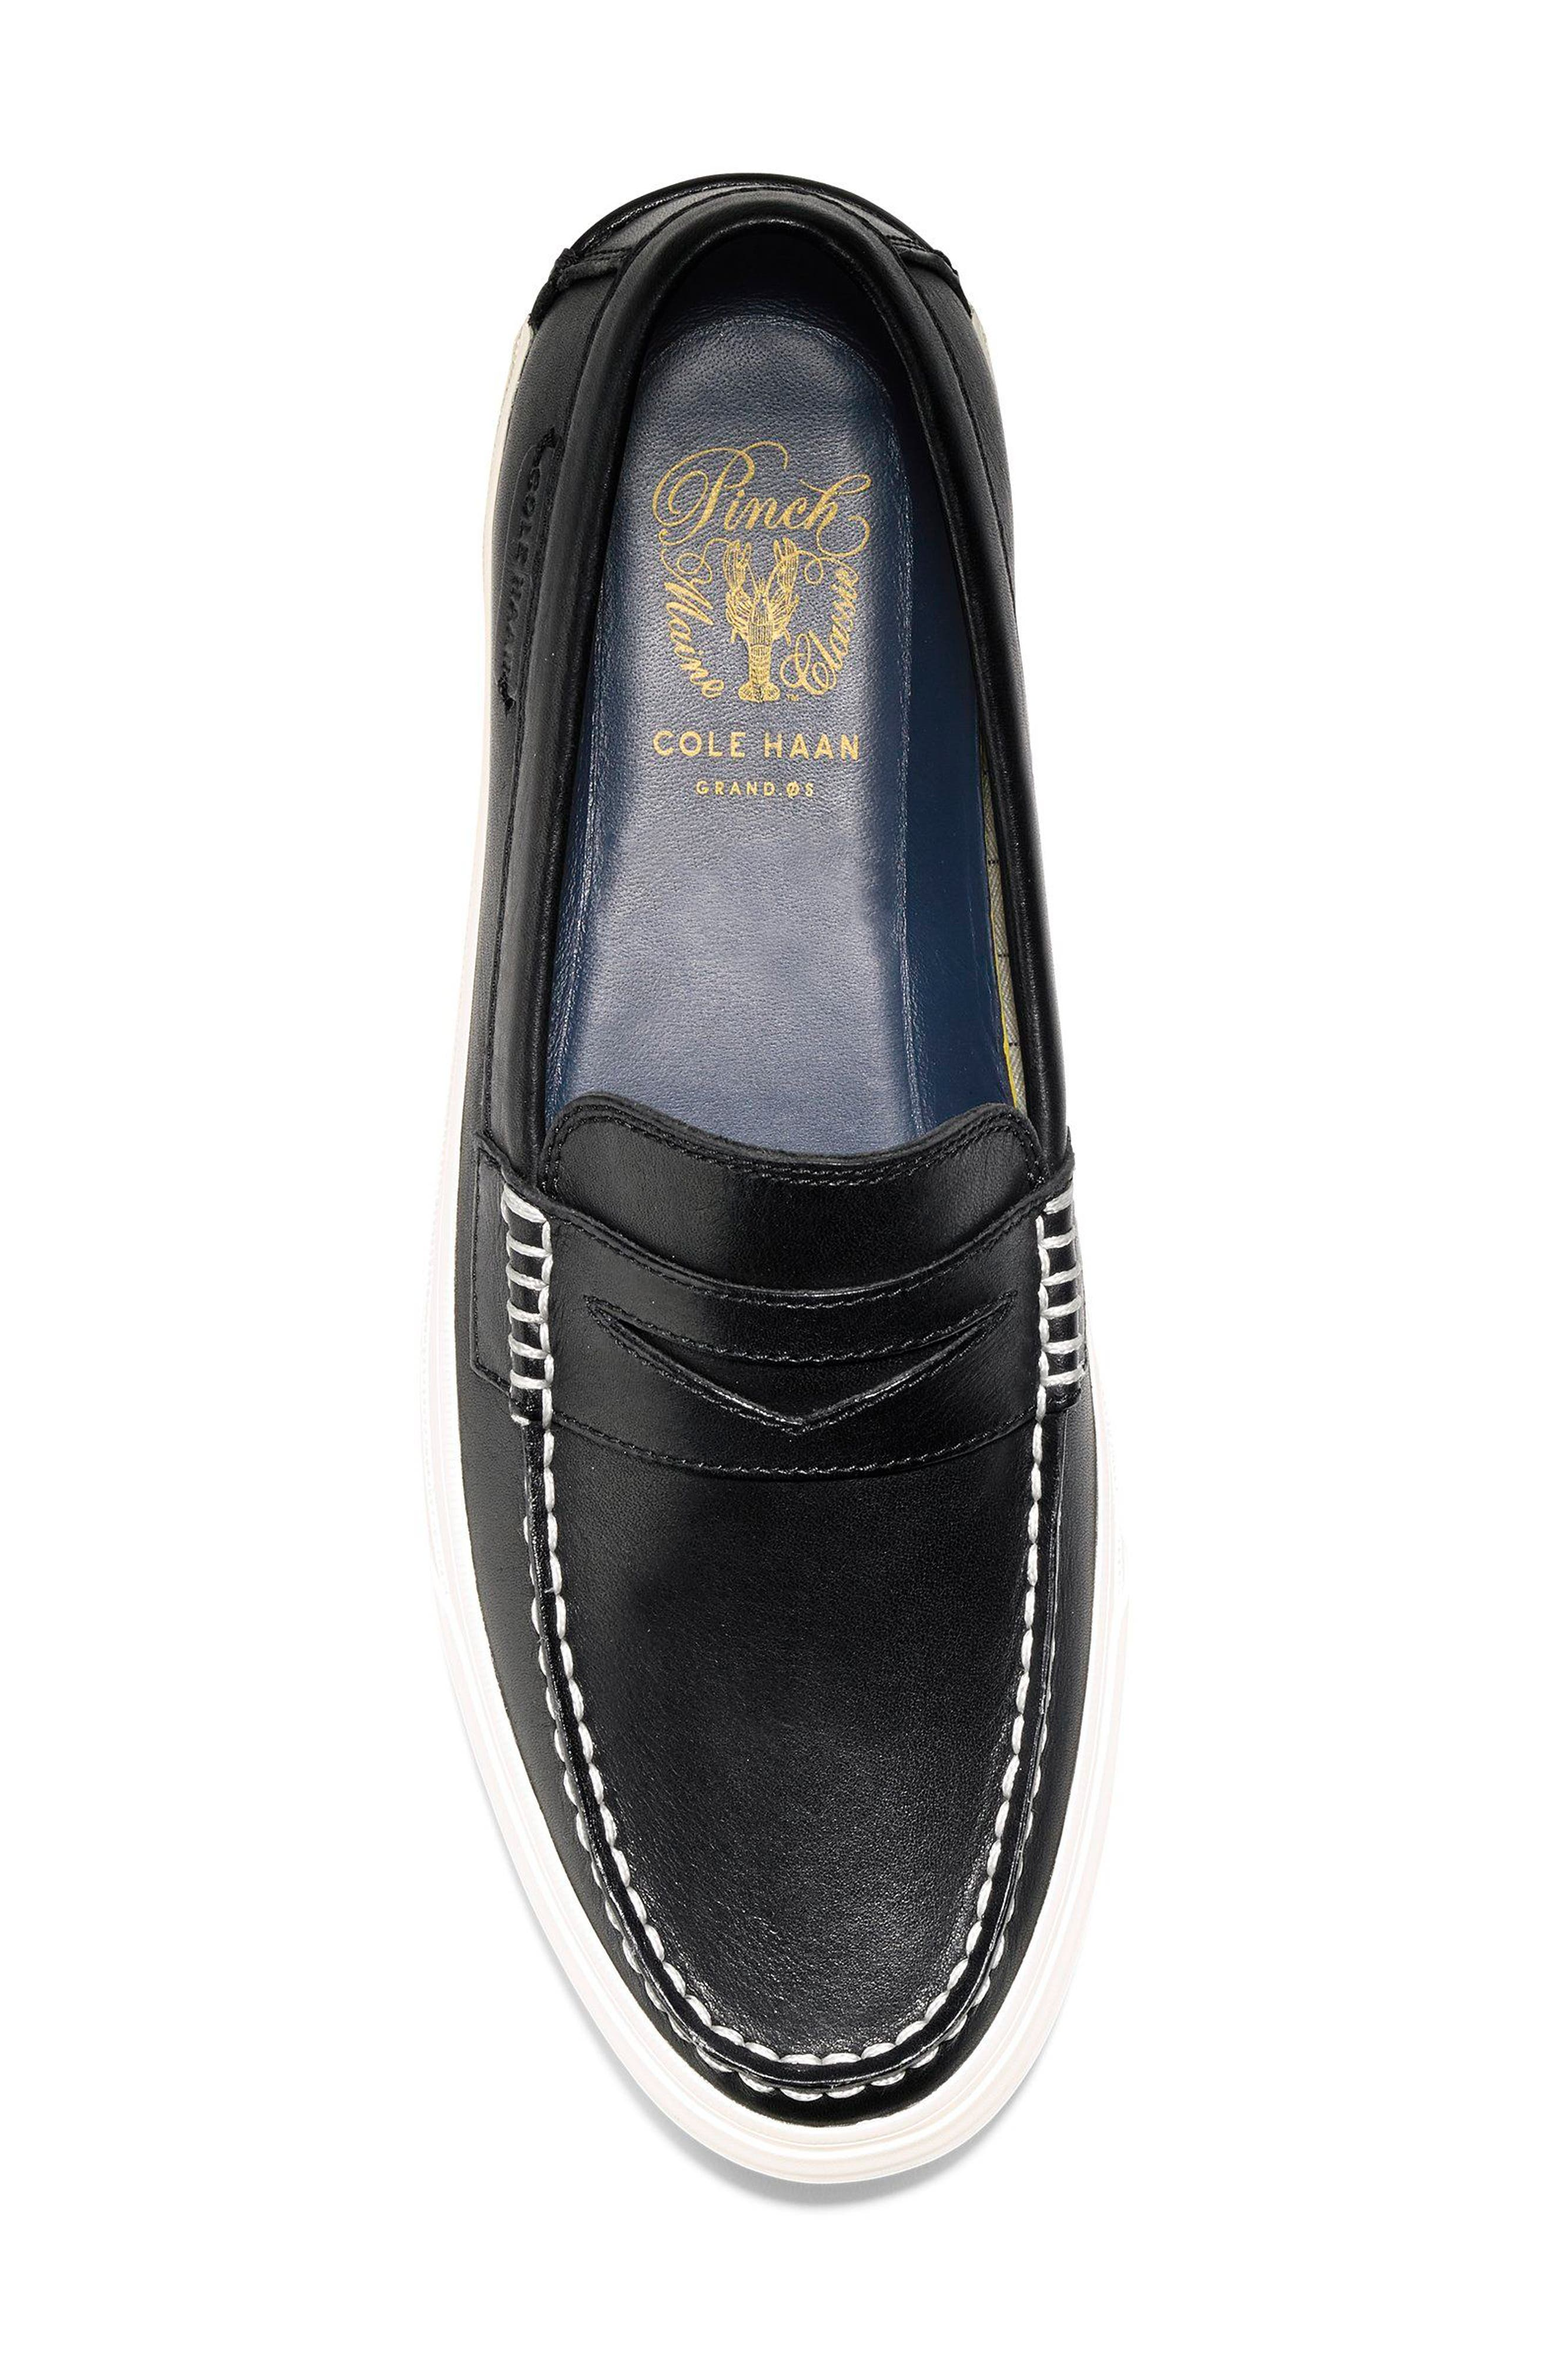 Pinch Weekend LX Penny Loafer,                             Alternate thumbnail 5, color,                             Black/ White